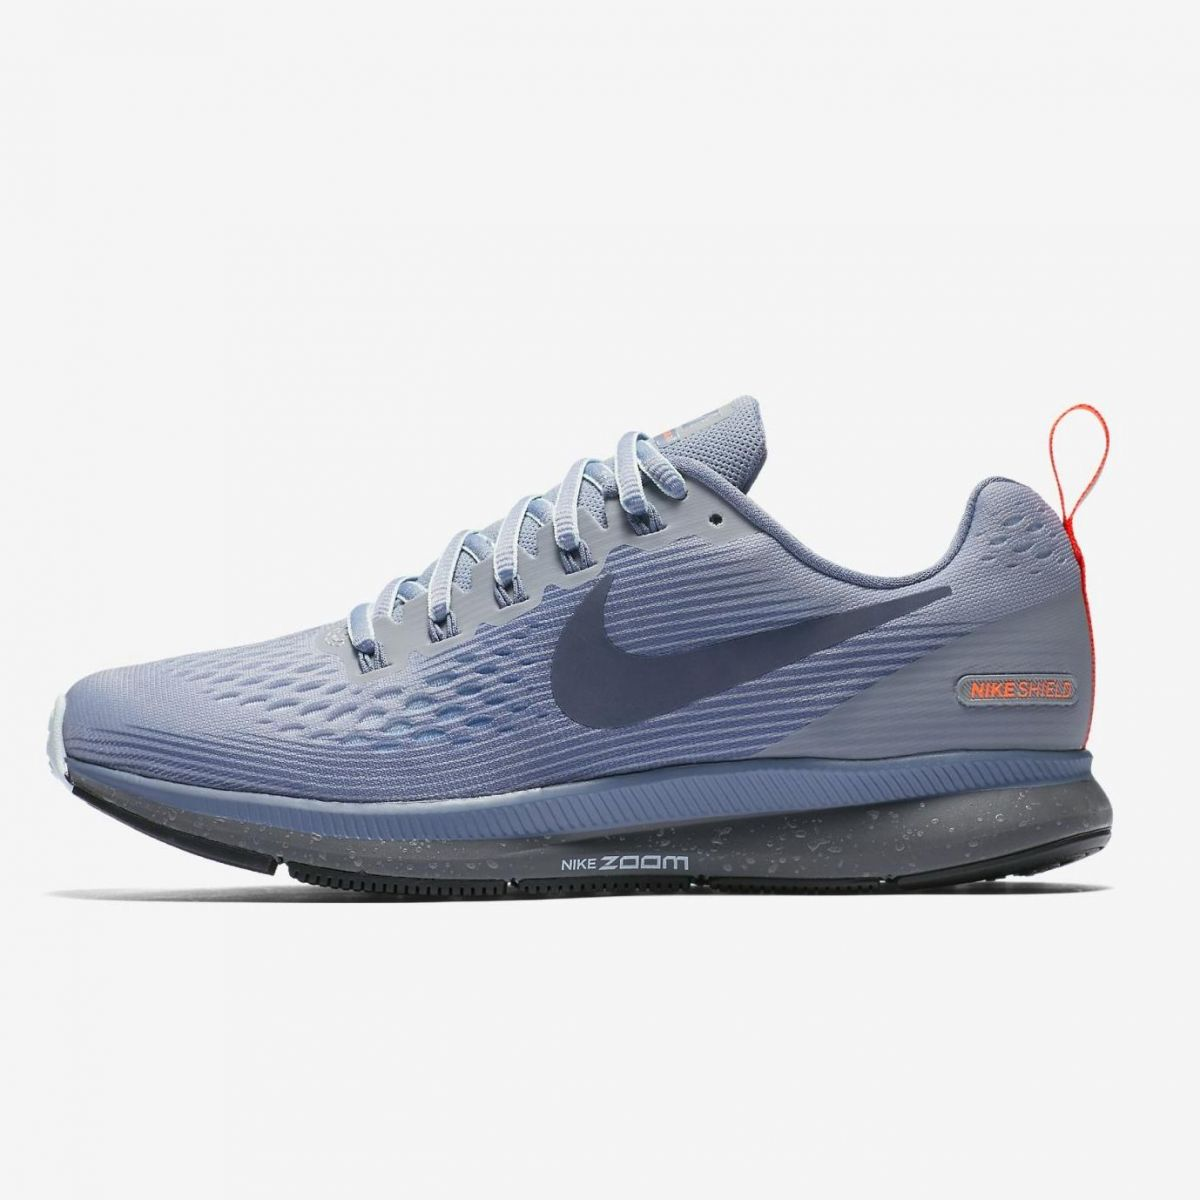 huge discount d1b7d 05e6a Nike Air Zoom Pegasus 34 Shield Damen Laufschuhe Running grau. 1 2 ...